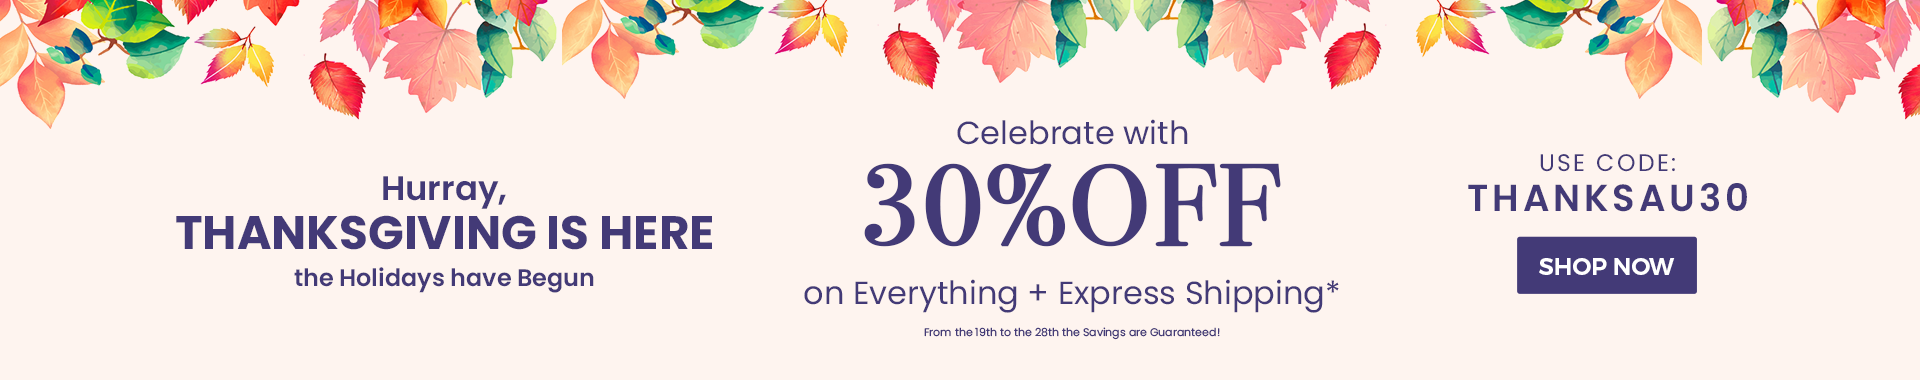 Celebrate with 30% Off on Everything + Express Shipping